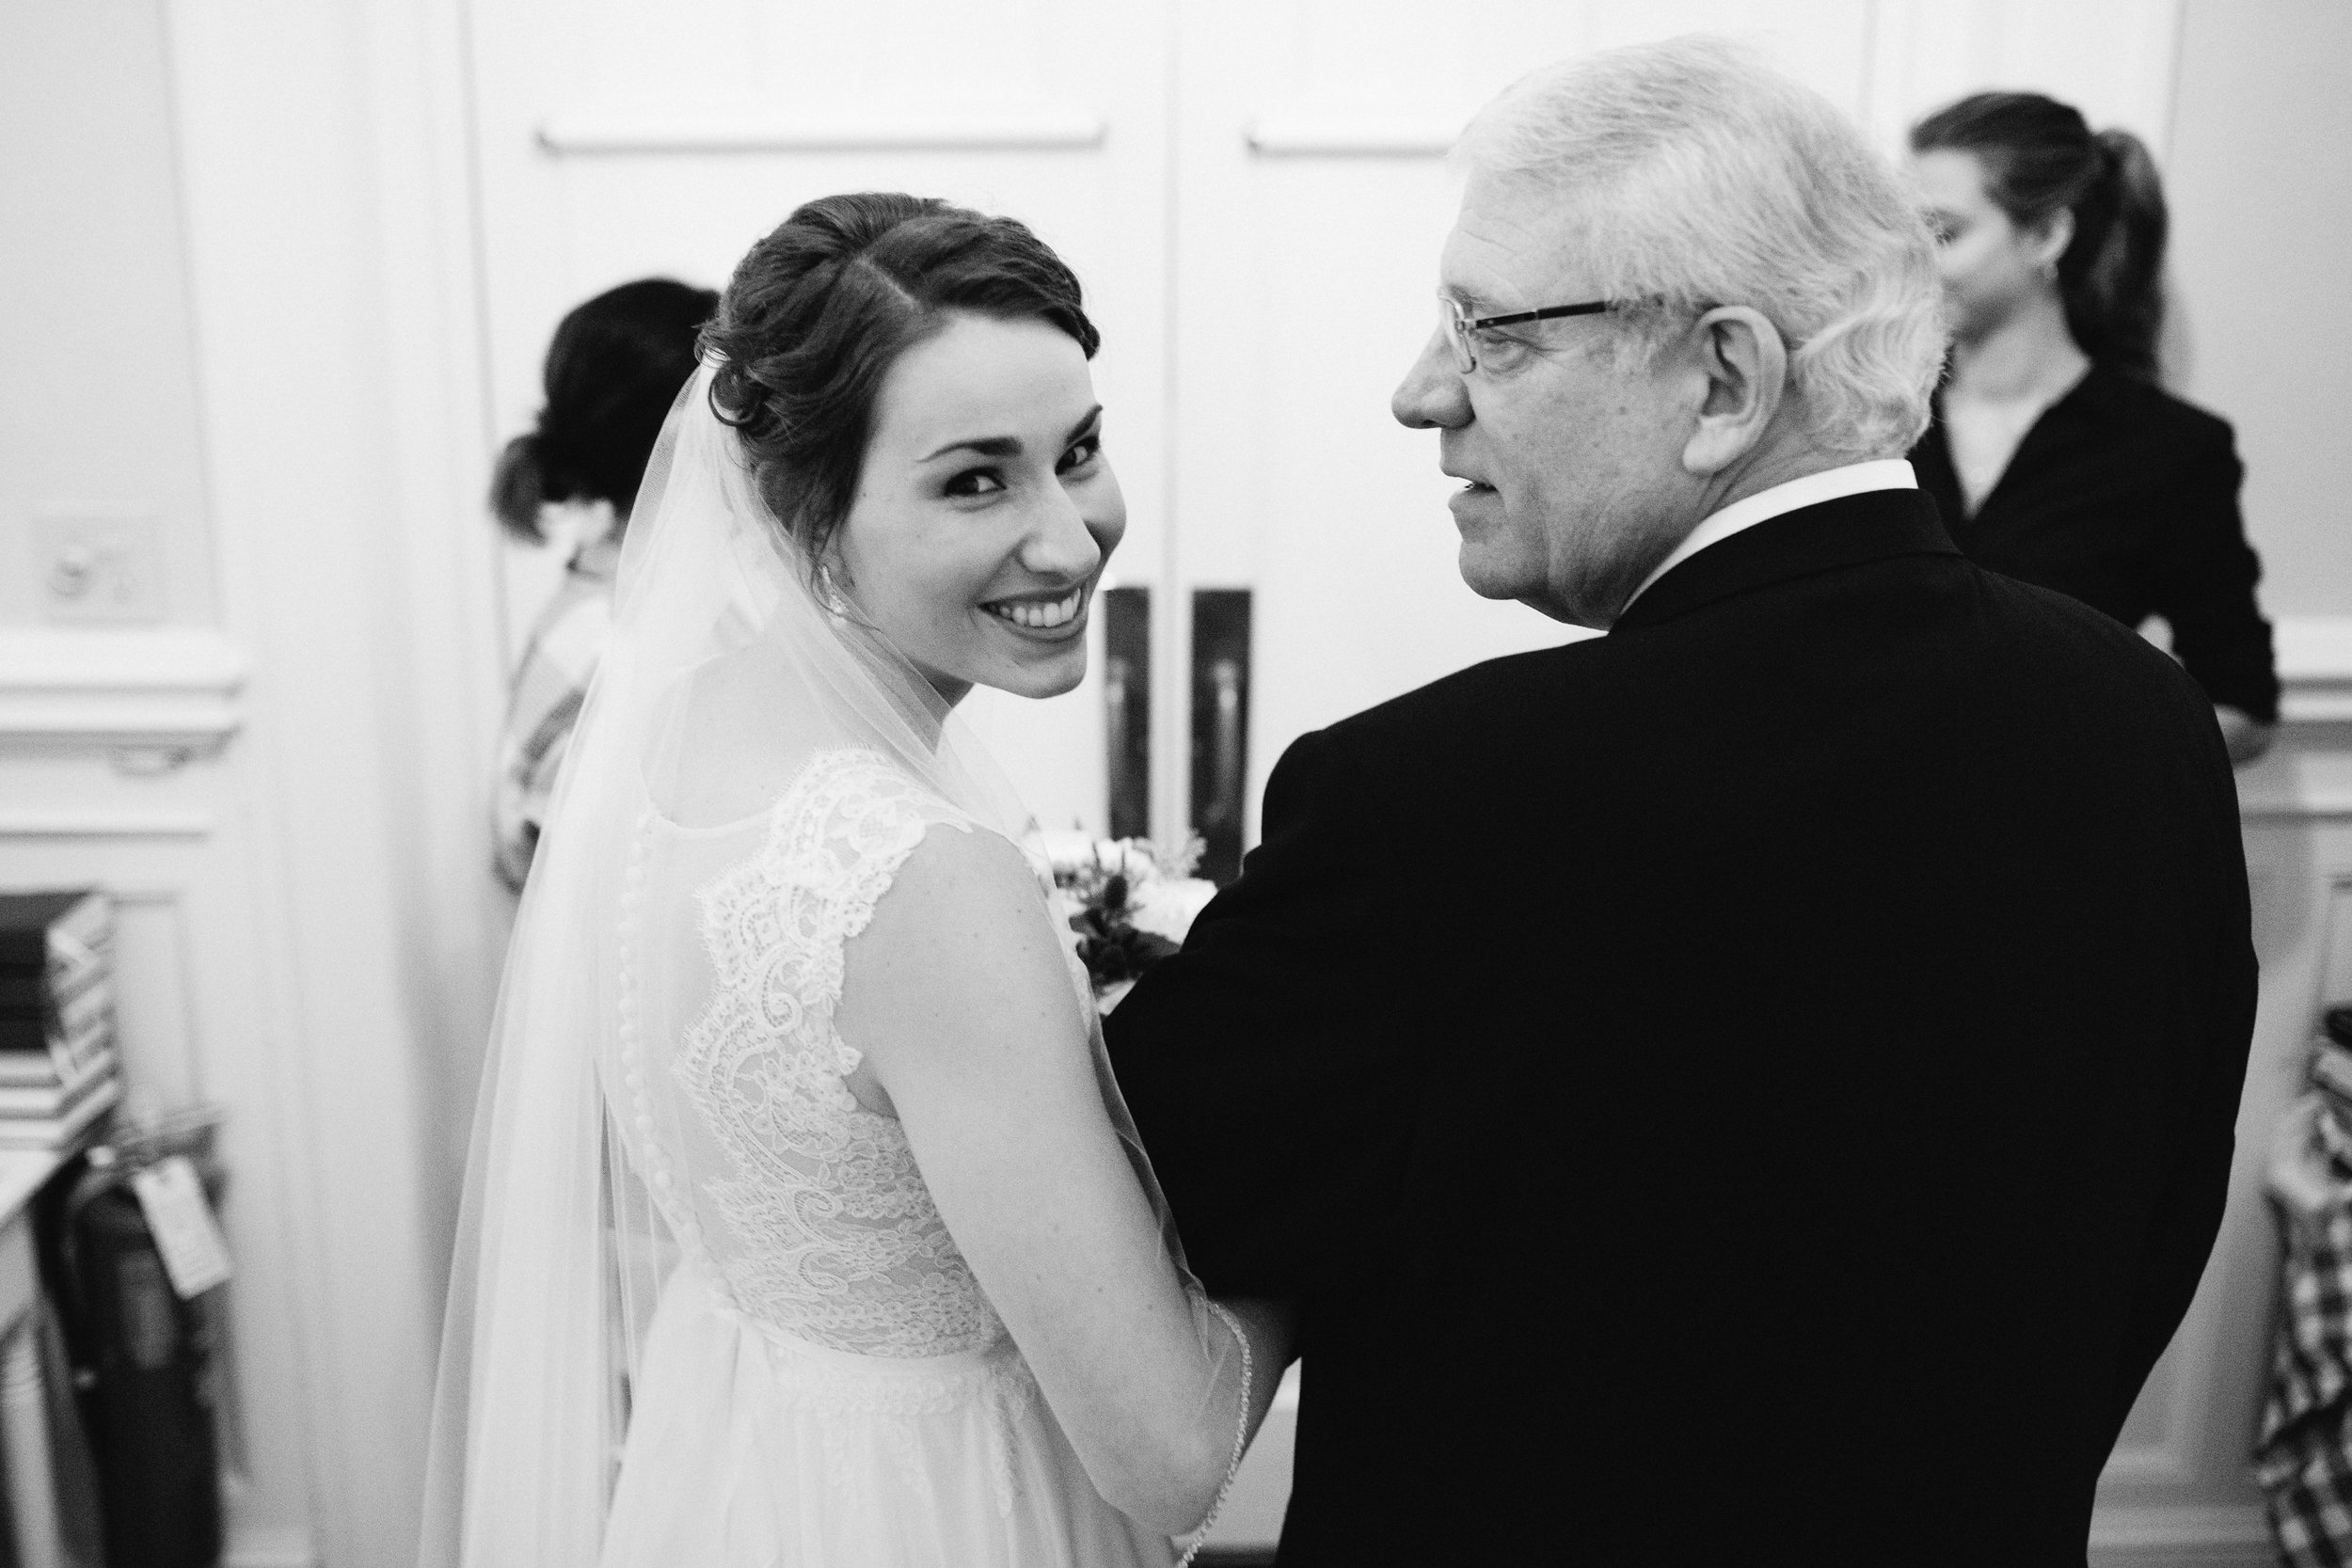 Hill_Ceremony_ANNAROUTHPHOTOGRAPHY_084.jpg